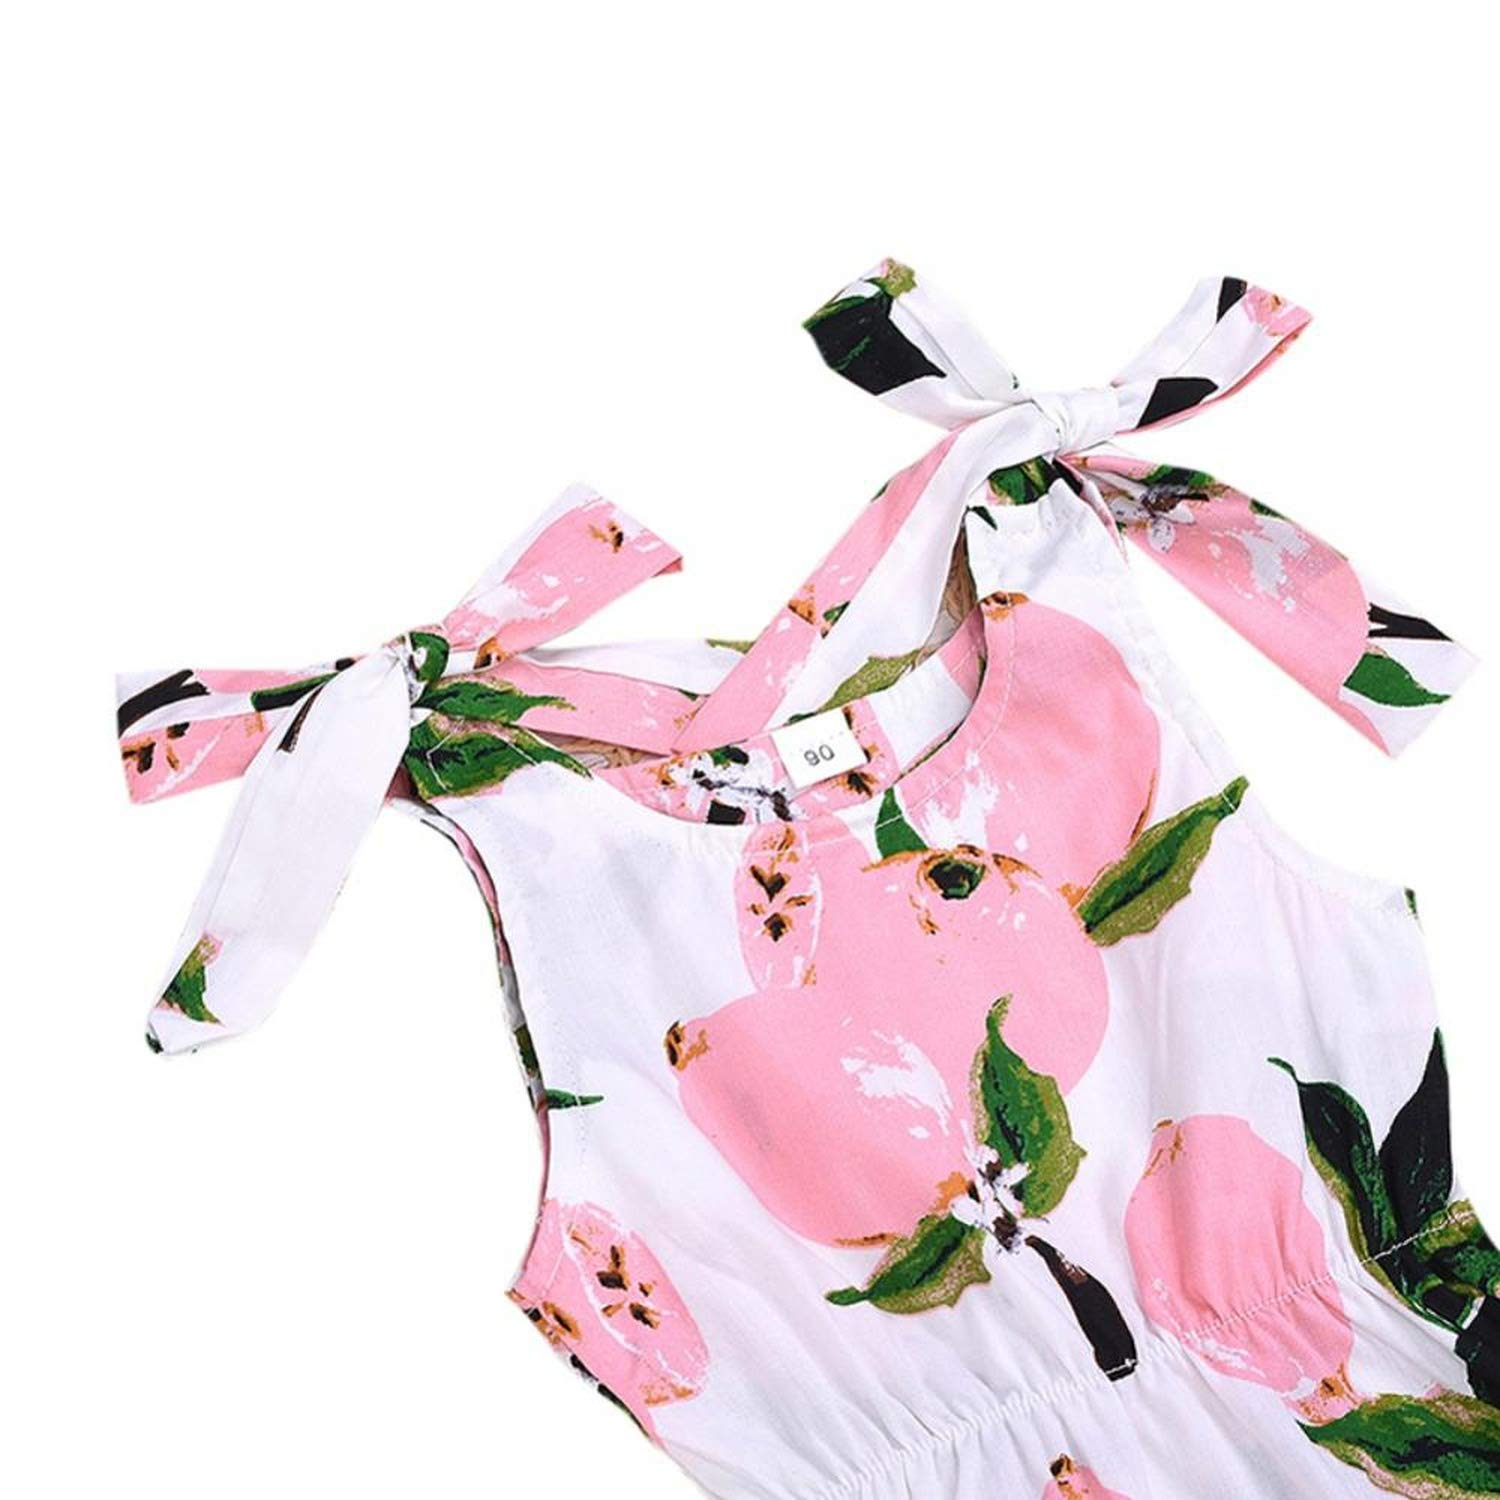 ChicLadies 0-24M Baby Newborn Girls Floral Pattern Jumpsuit Sleeveless Infant Casual Bodysuit Outfits